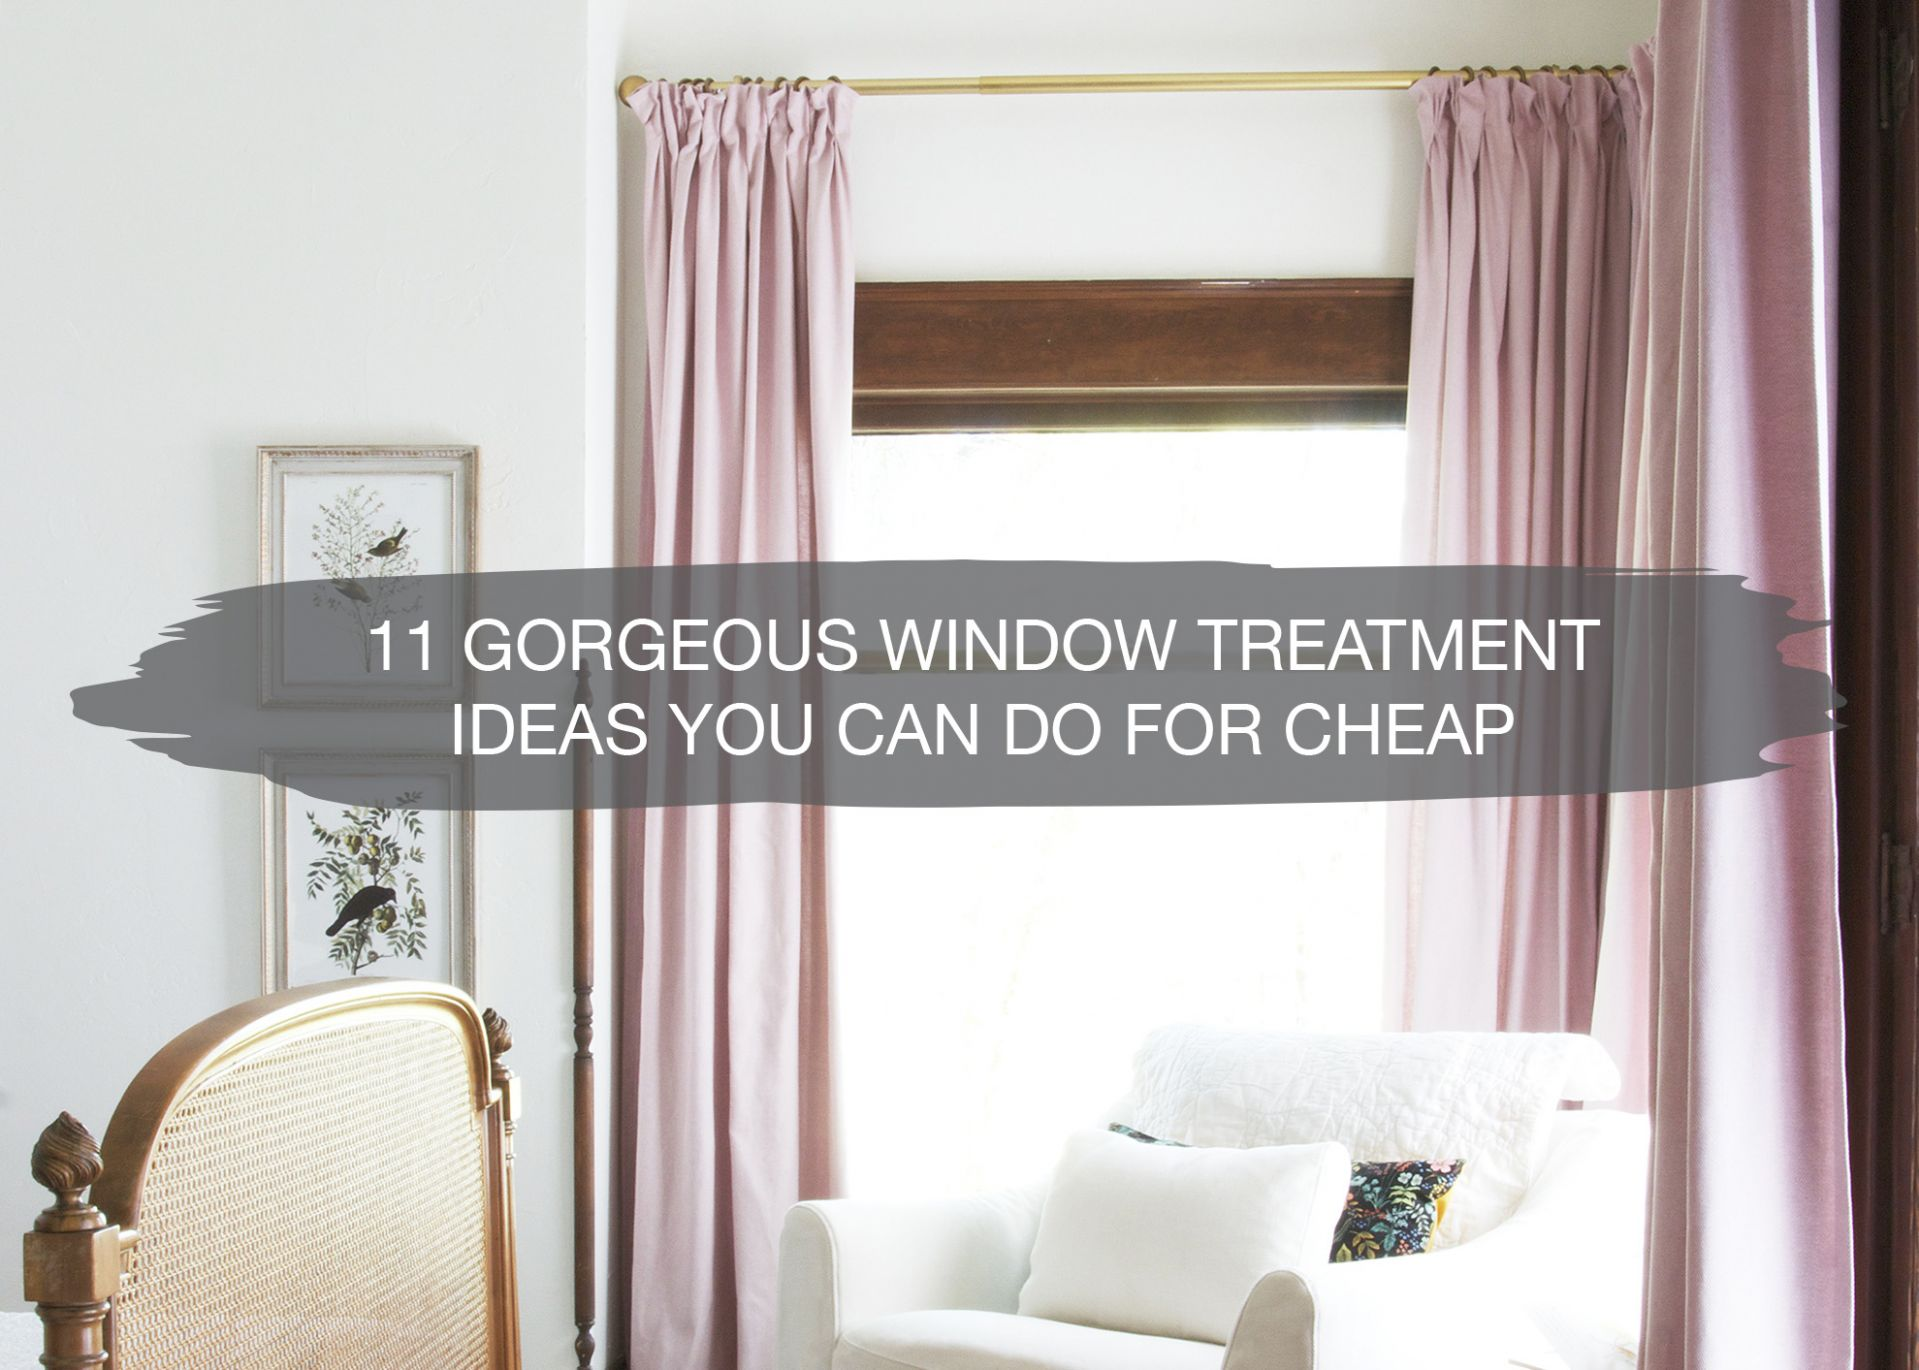 11 Gorgeous Window Treatment Ideas You Can Do For Cheap ...